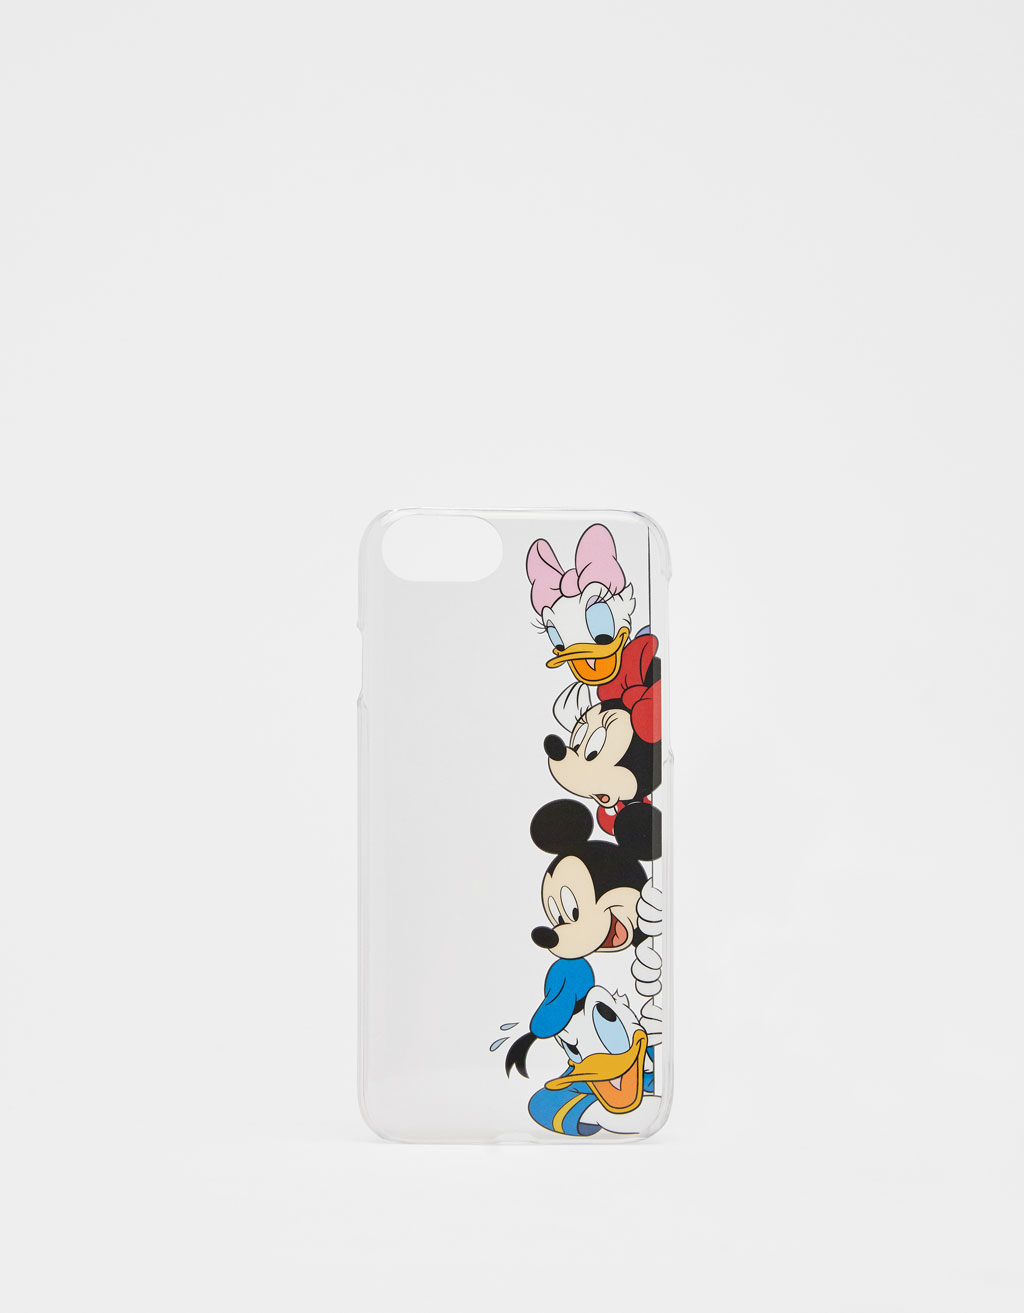 Carcasa Disney  iPhone 6 / 6S / 7 / 8